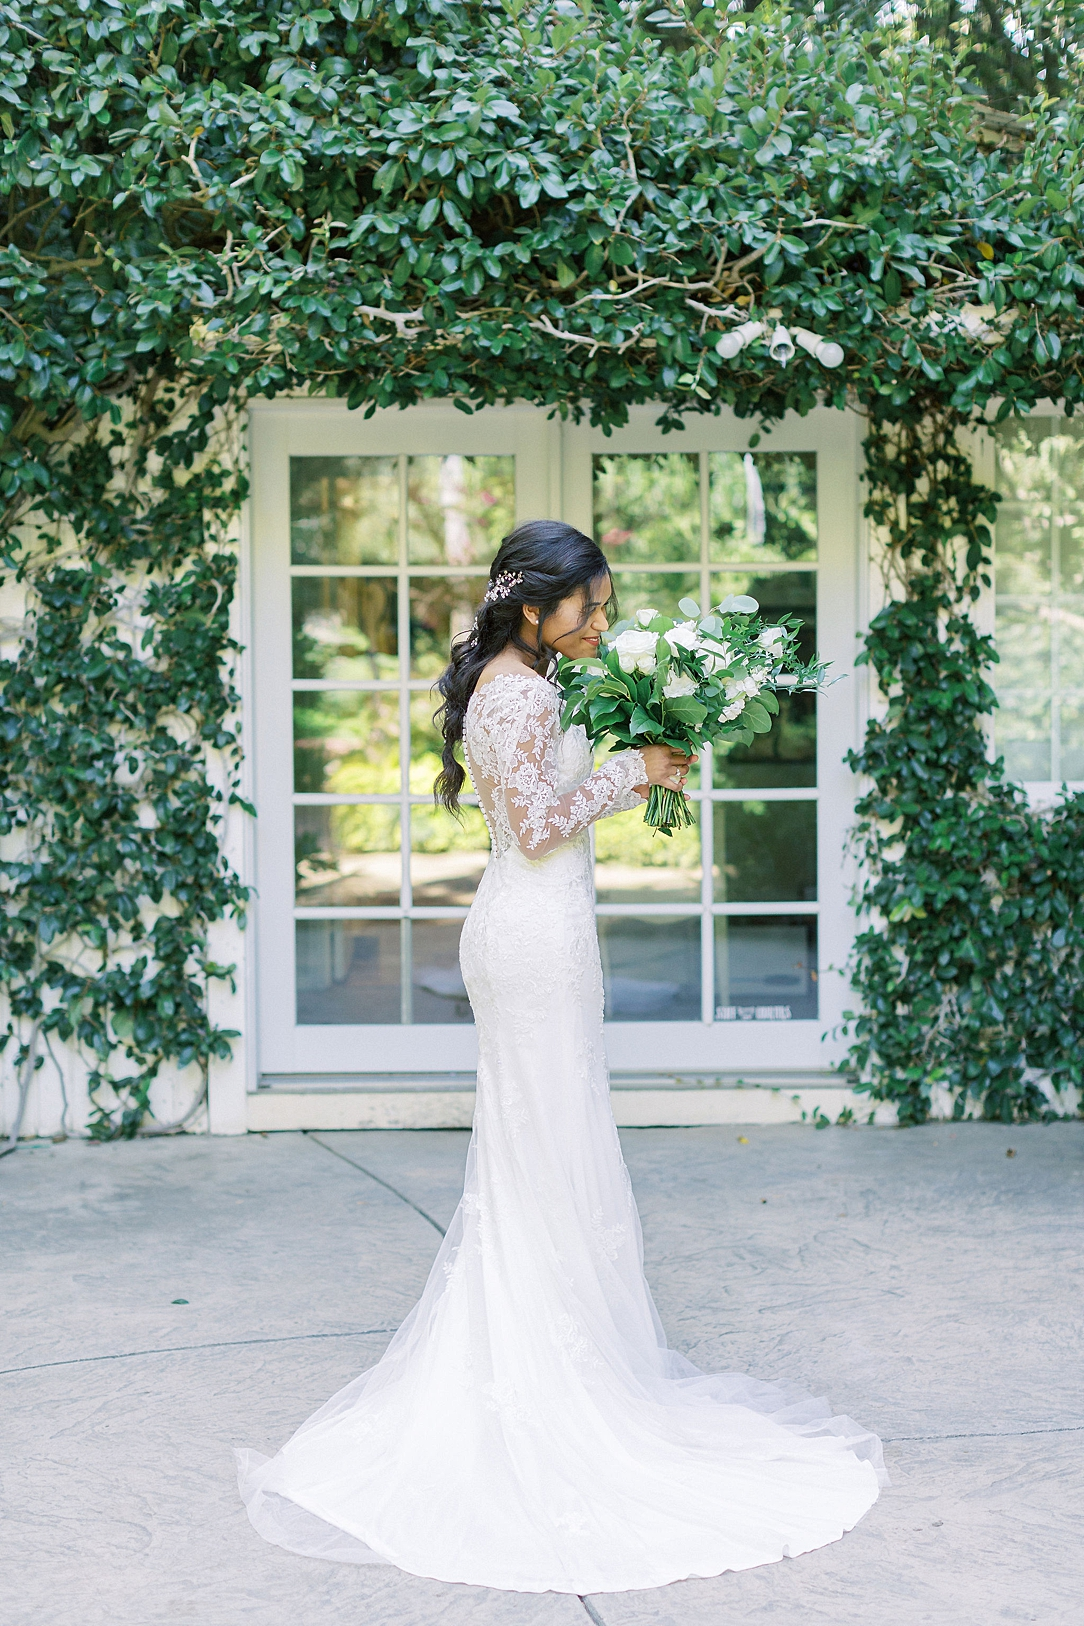 An Organic Floral Inspired Summer Wedding in the gardens of Hartley Botanica Somis by Wedding Photographer Madison Ellis (96)